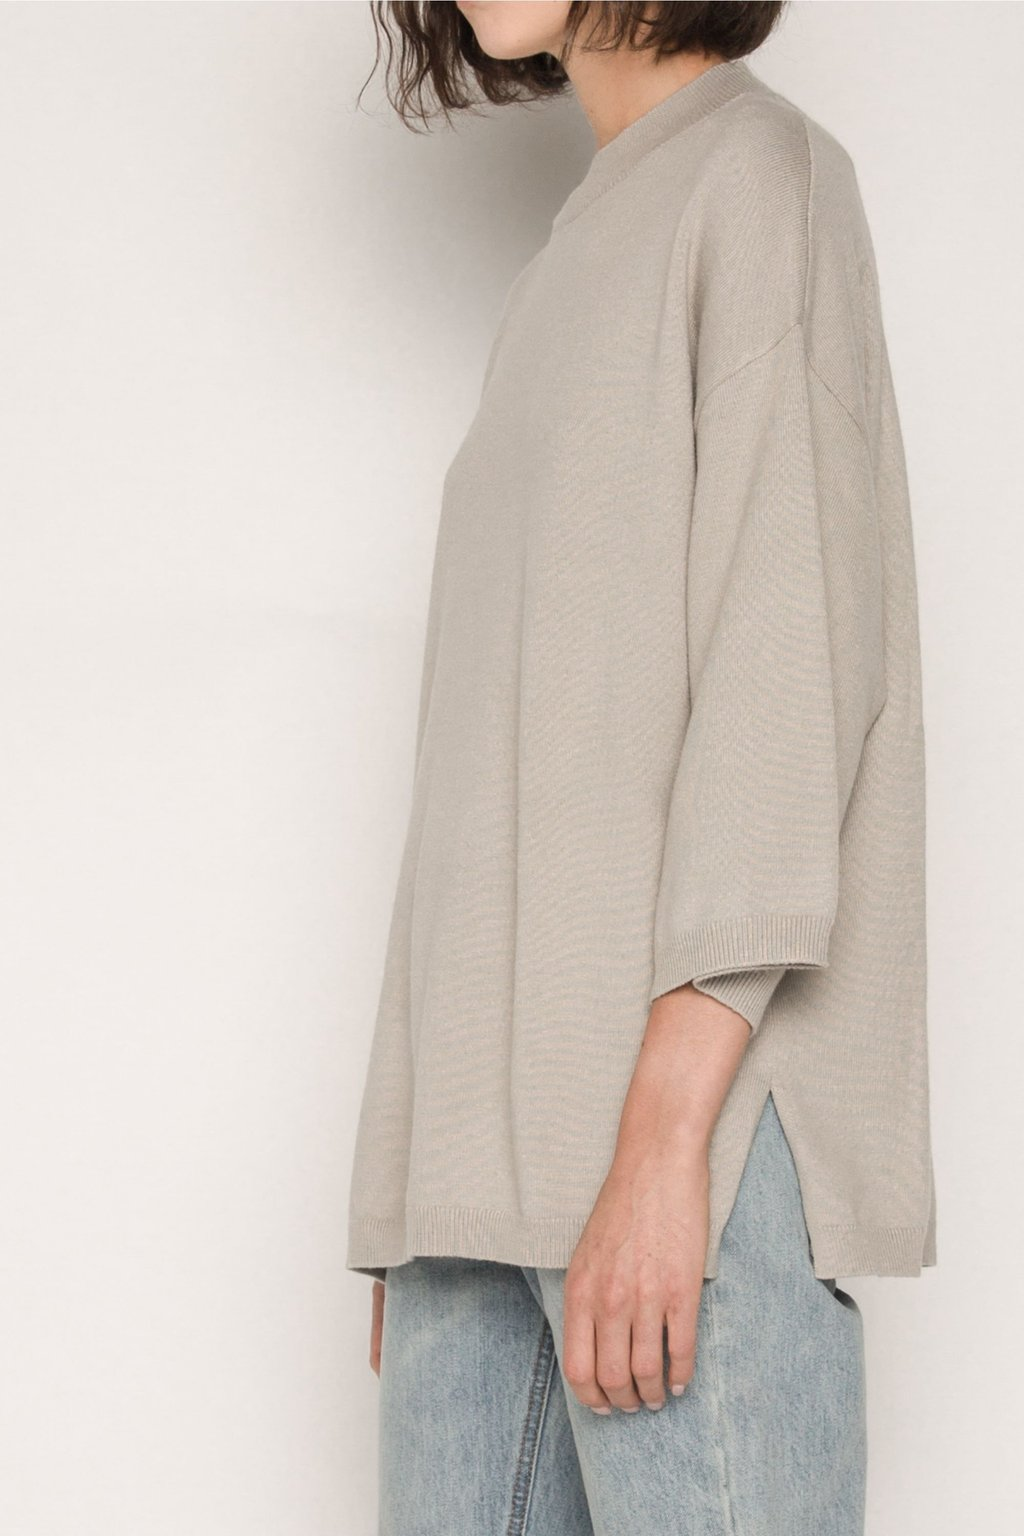 Sweater 1470 Taupe 3